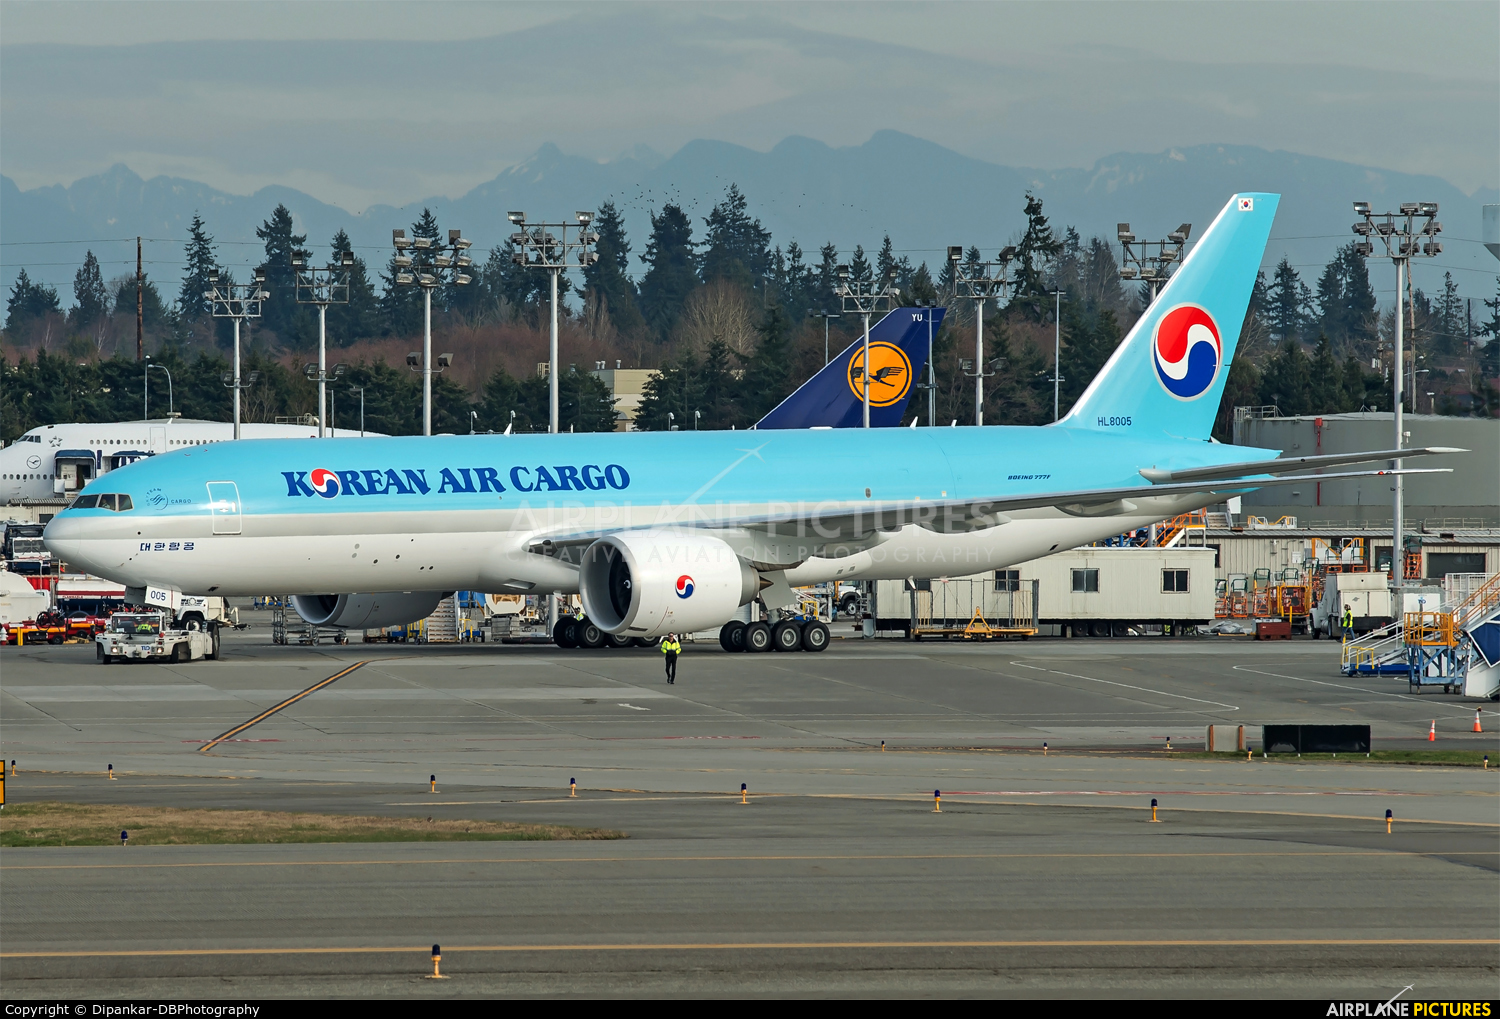 Korean Air Cargo HL8005 aircraft at Everett - Snohomish County / Paine Field